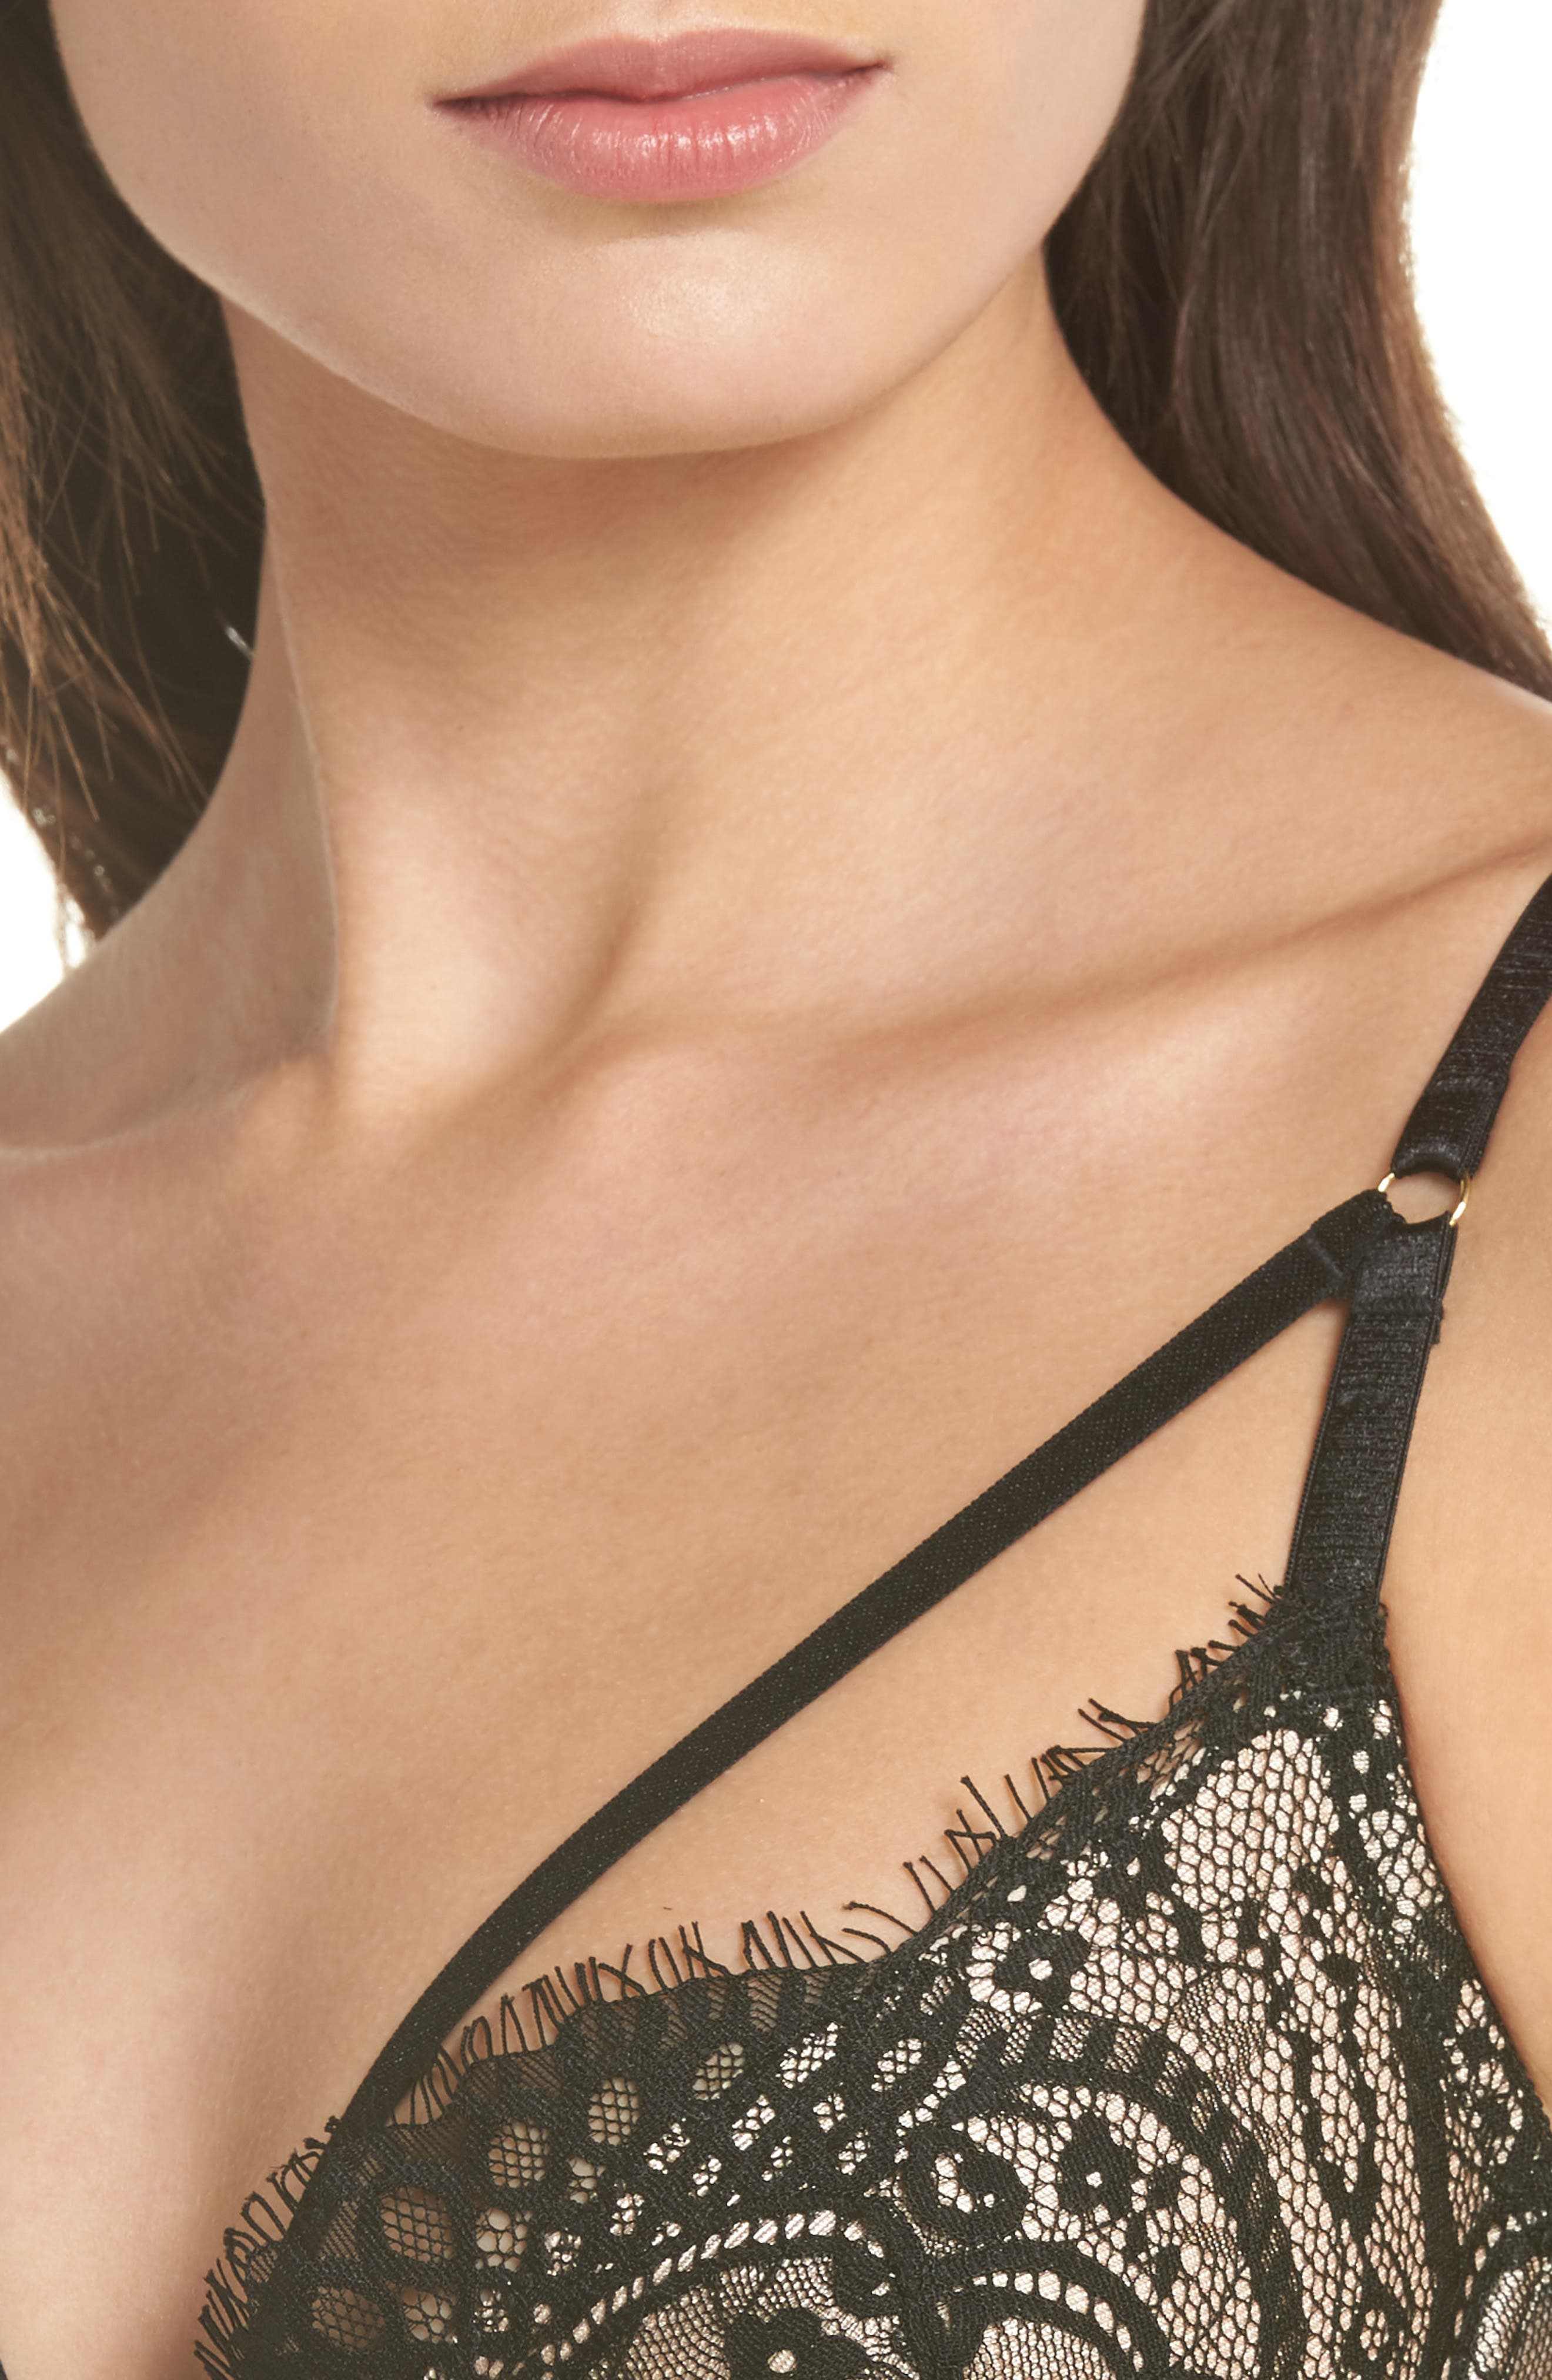 Between Sheets Underwire Bra,                             Alternate thumbnail 9, color,                             Black/ Nude